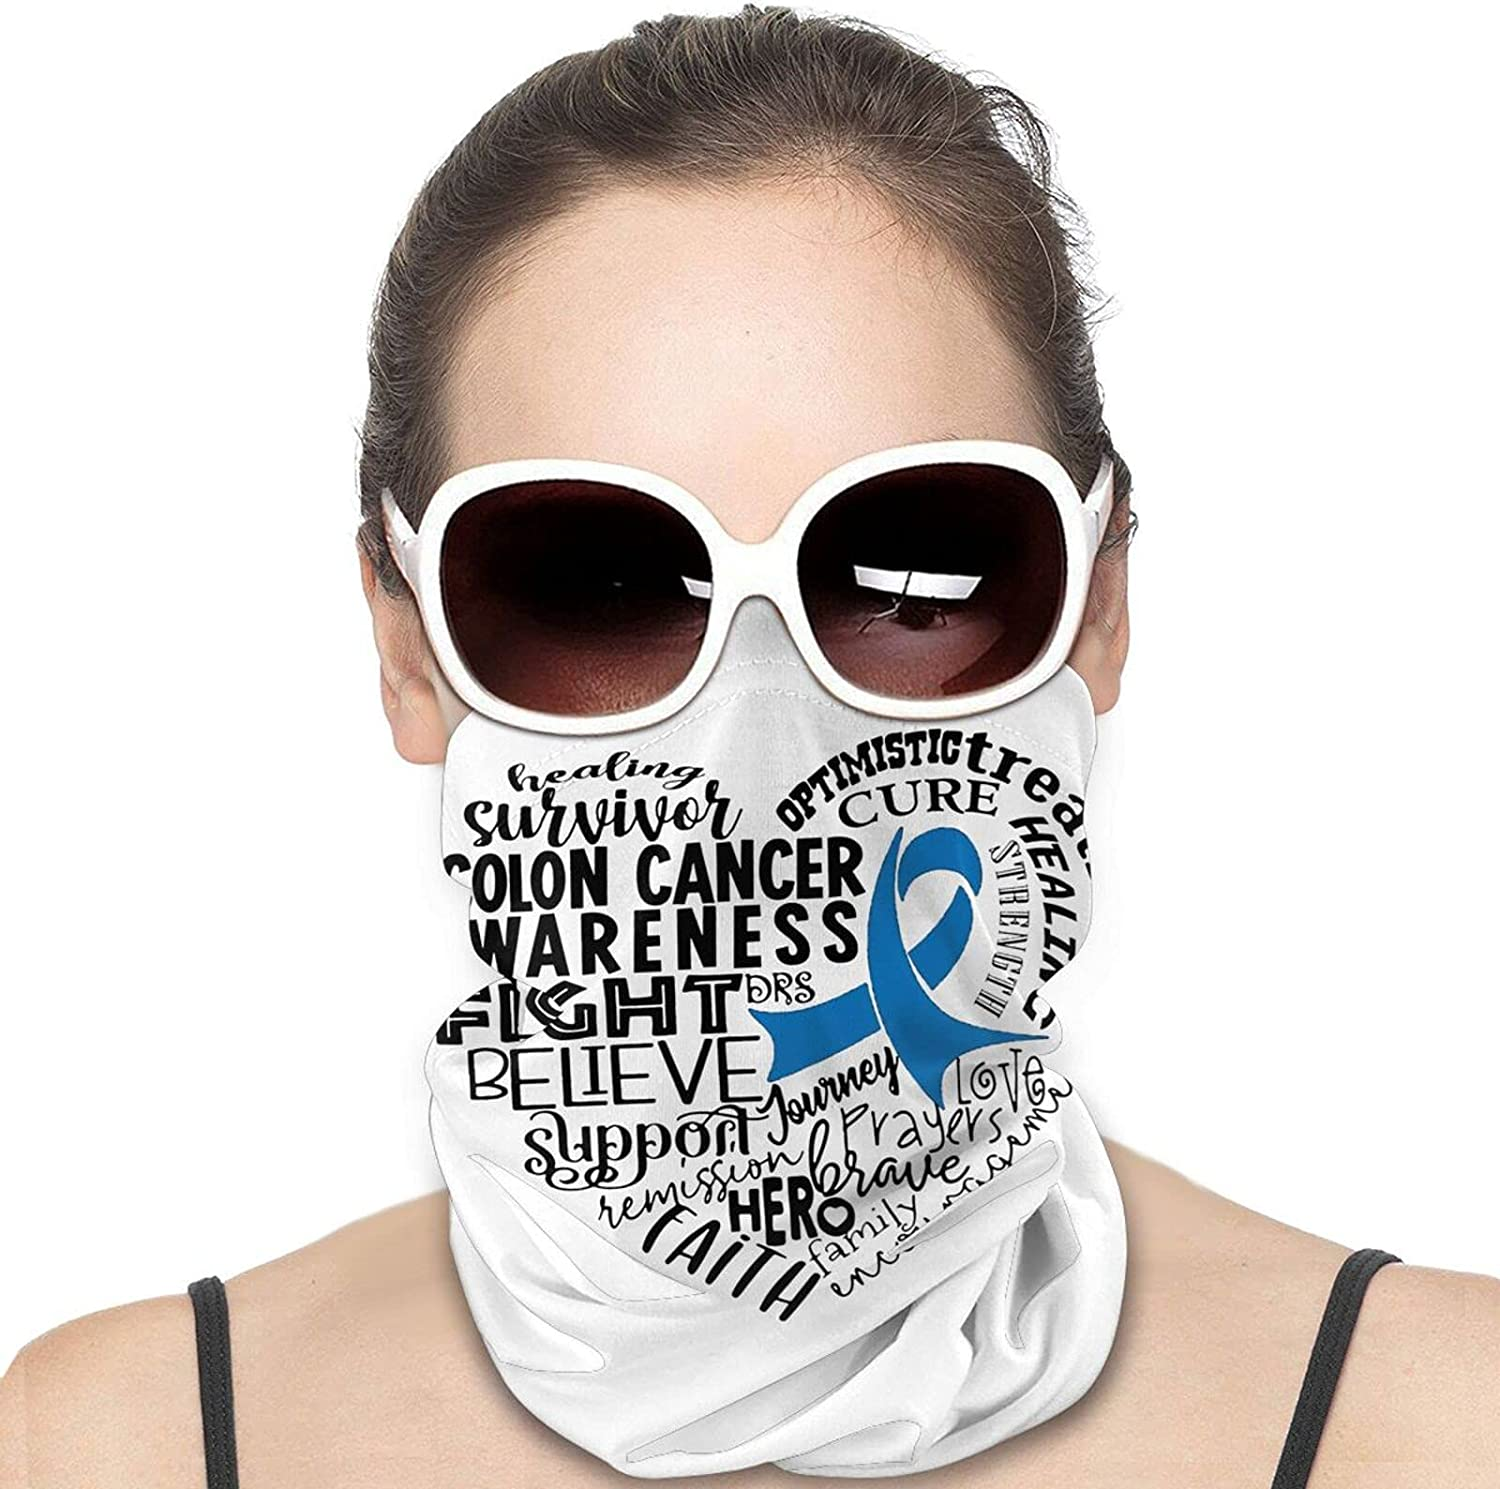 Colon Cancer Awareness Heart Blue Ribbon Round Neck Gaiter Bandnas Face Cover Uv Protection Prevent bask in Ice Scarf Headbands Perfect for Motorcycle Cycling Running Festival Raves Outdoors